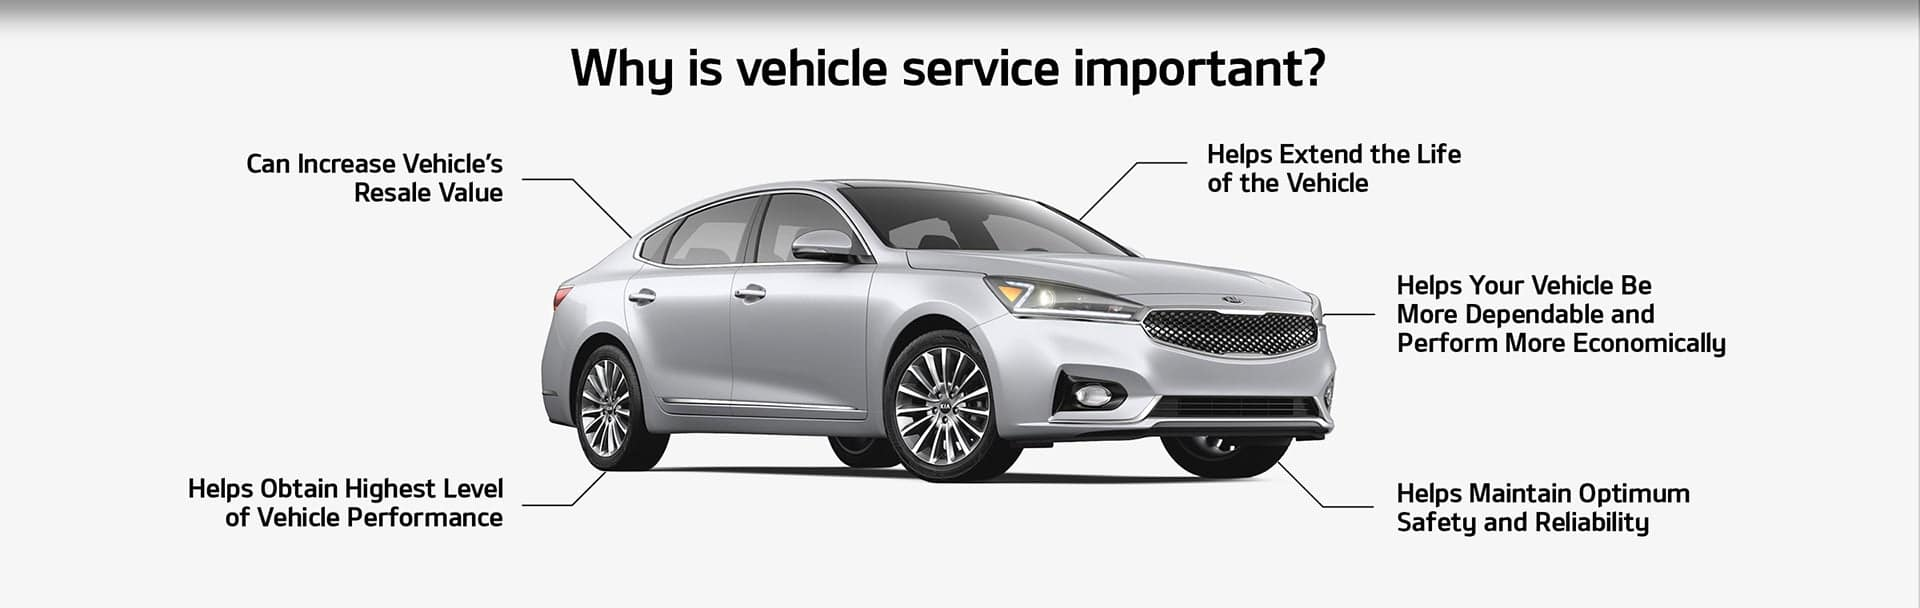 why vehicle service is important